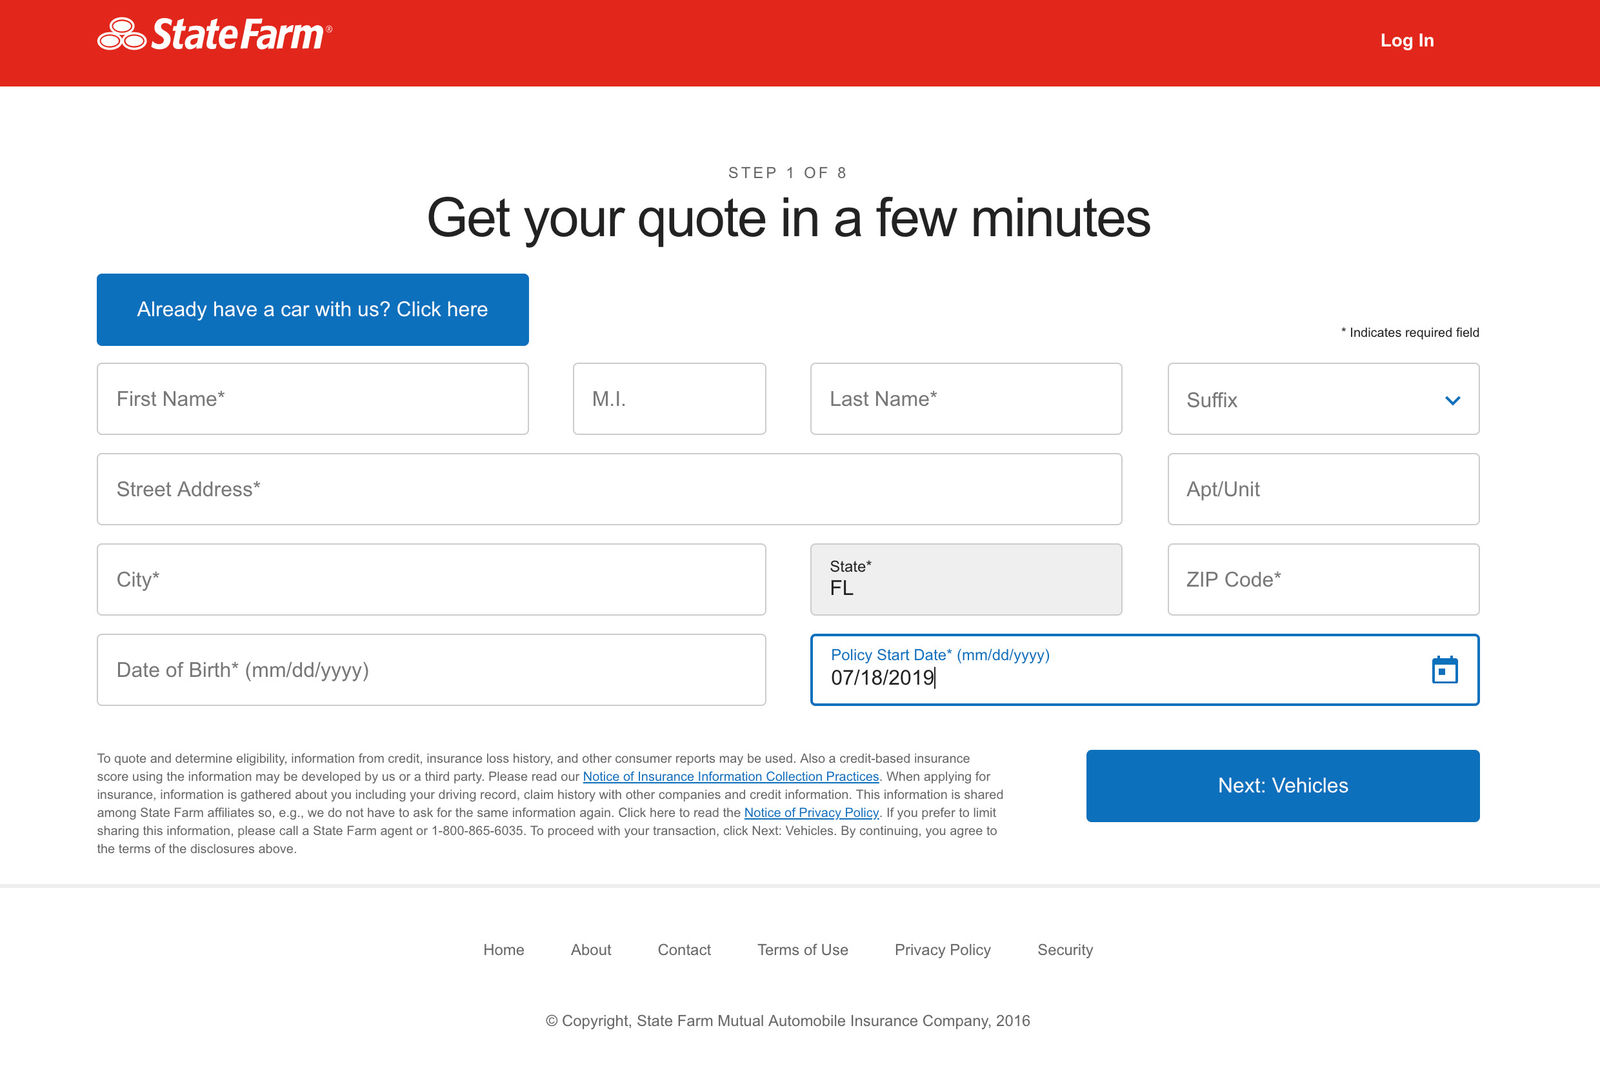 State Farm Quotes personal info